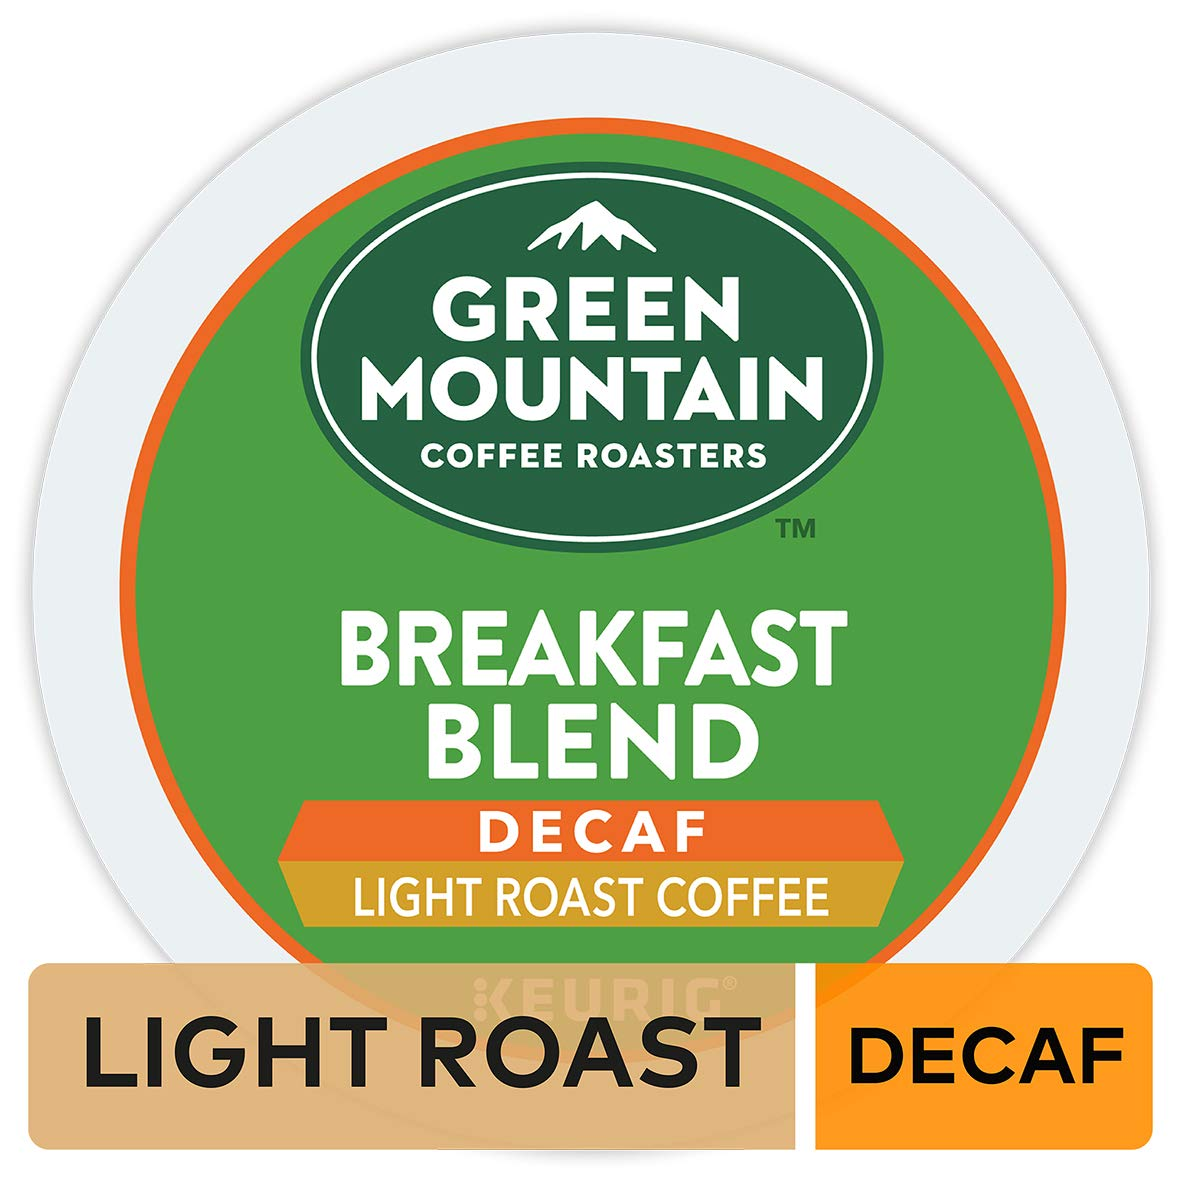 Green Mountain Coffee Roasters Breakfast Blend Decaf, Single Serve Coffee K-Cup Pod, Light Roast, 72